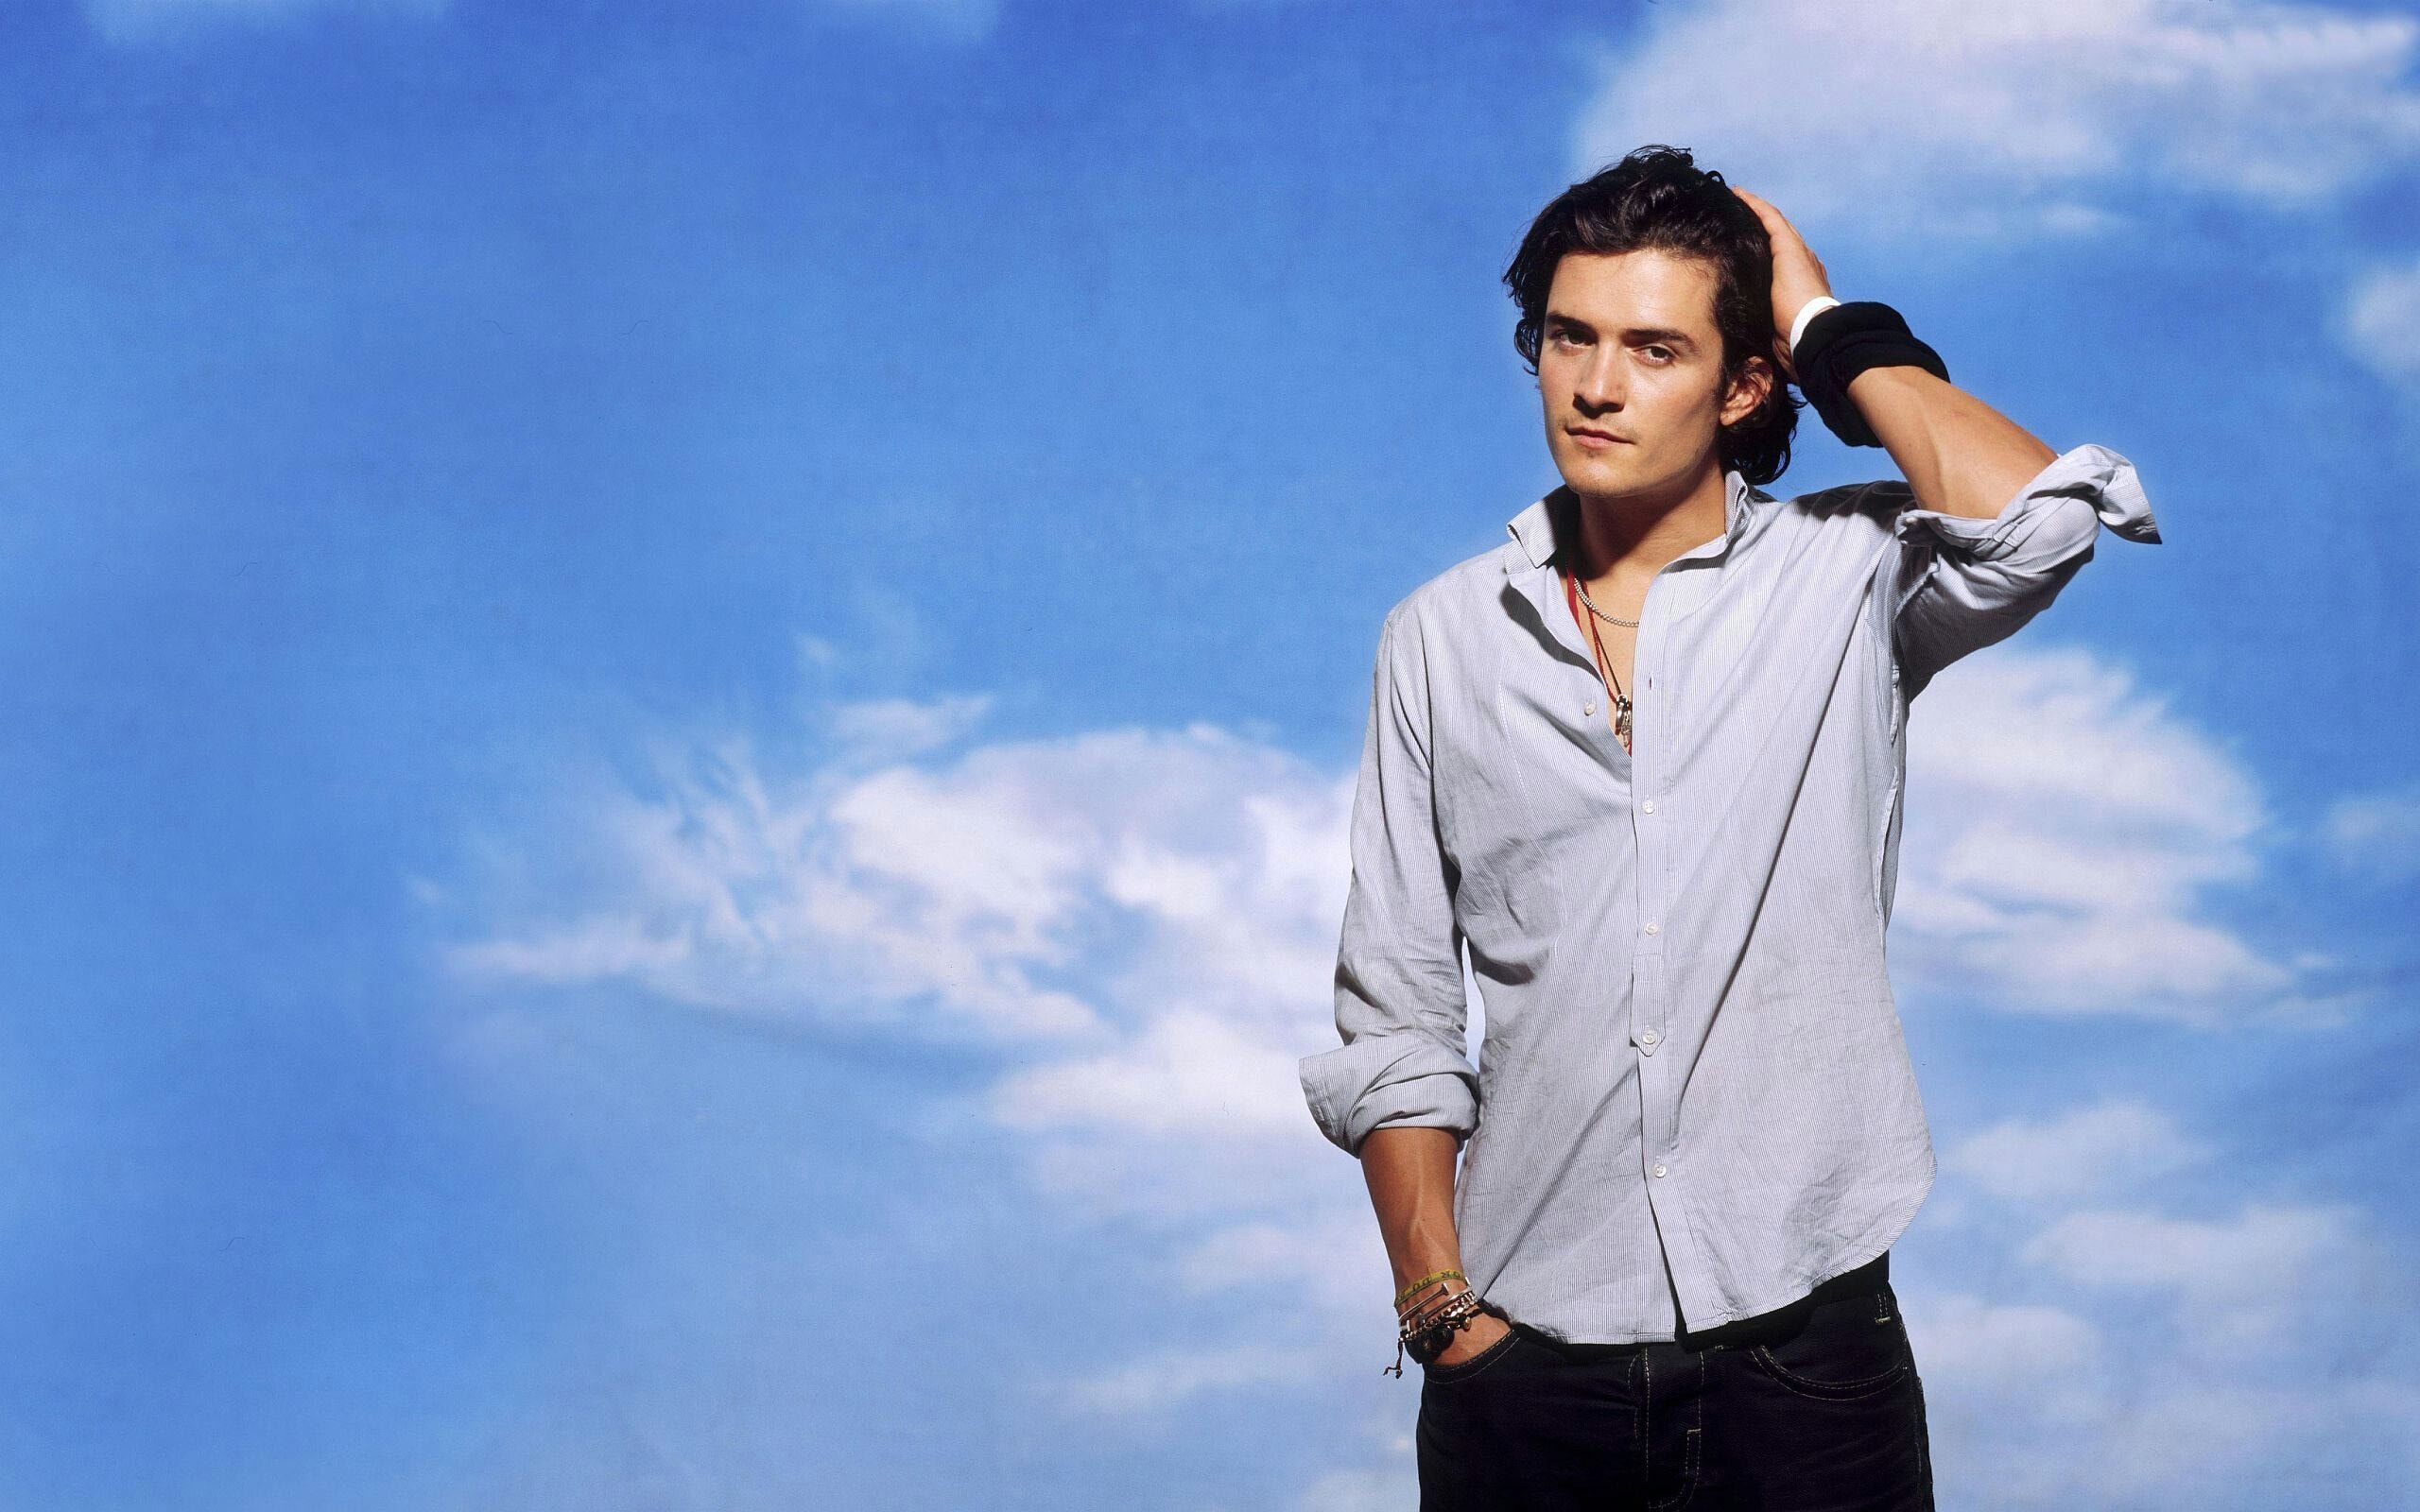 Orlando Bloom Widescreen